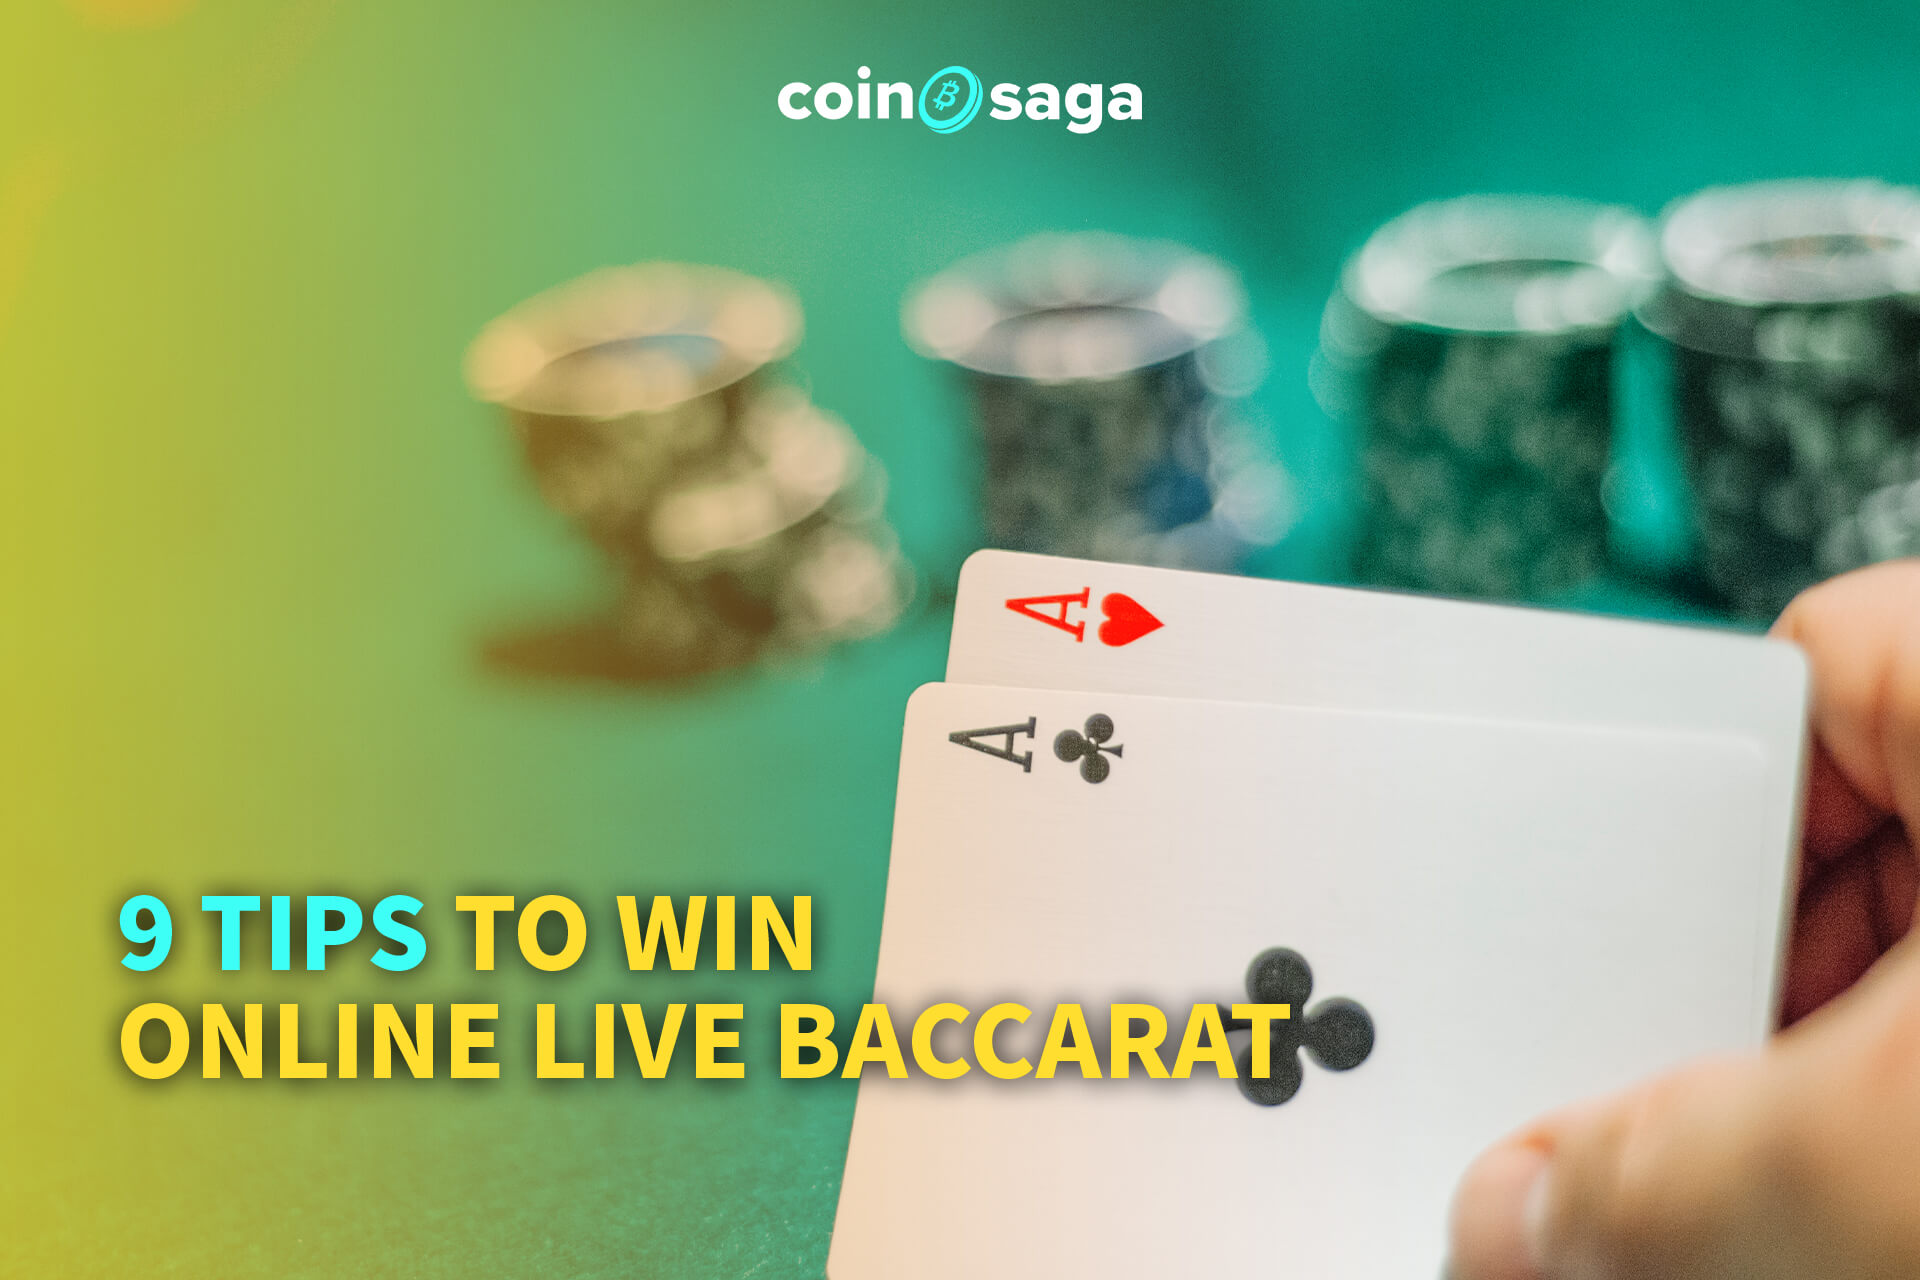 9 tips to Win Online Live Baccarat